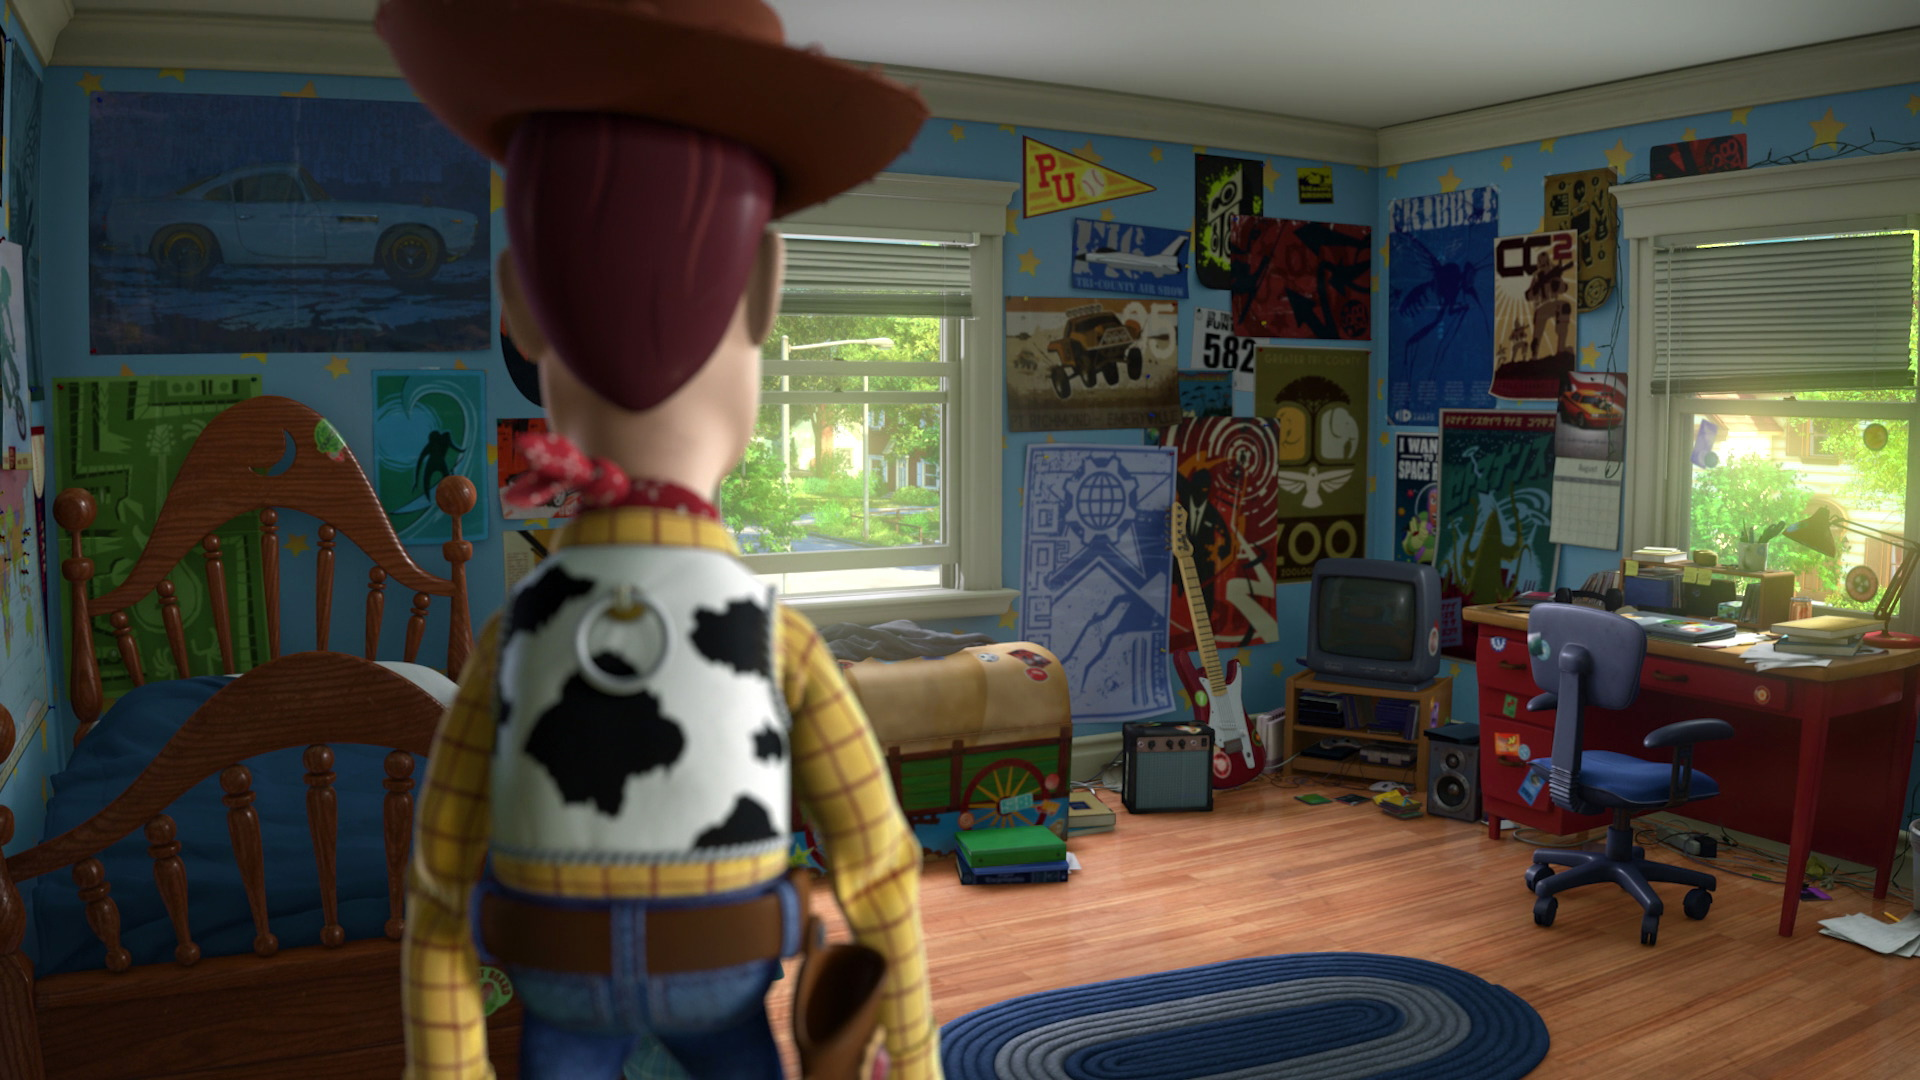 Toy Story 3 Film Study Color And Lighting A Dreamer